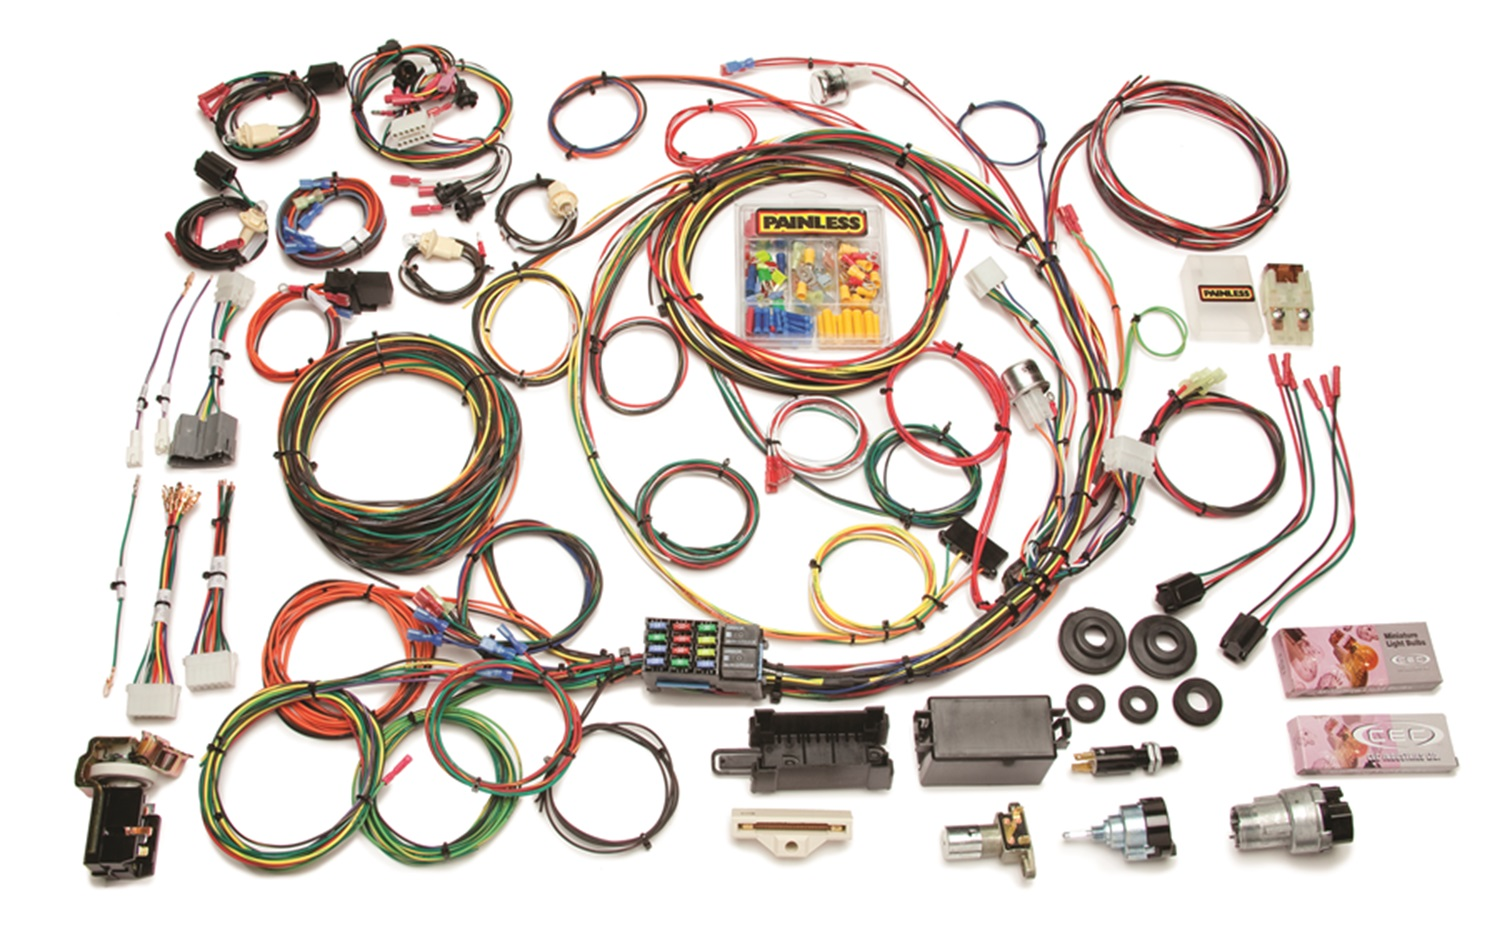 painless wiring honeywell heat only thermostat diagram 10118 12 circuit pick up harness ebay